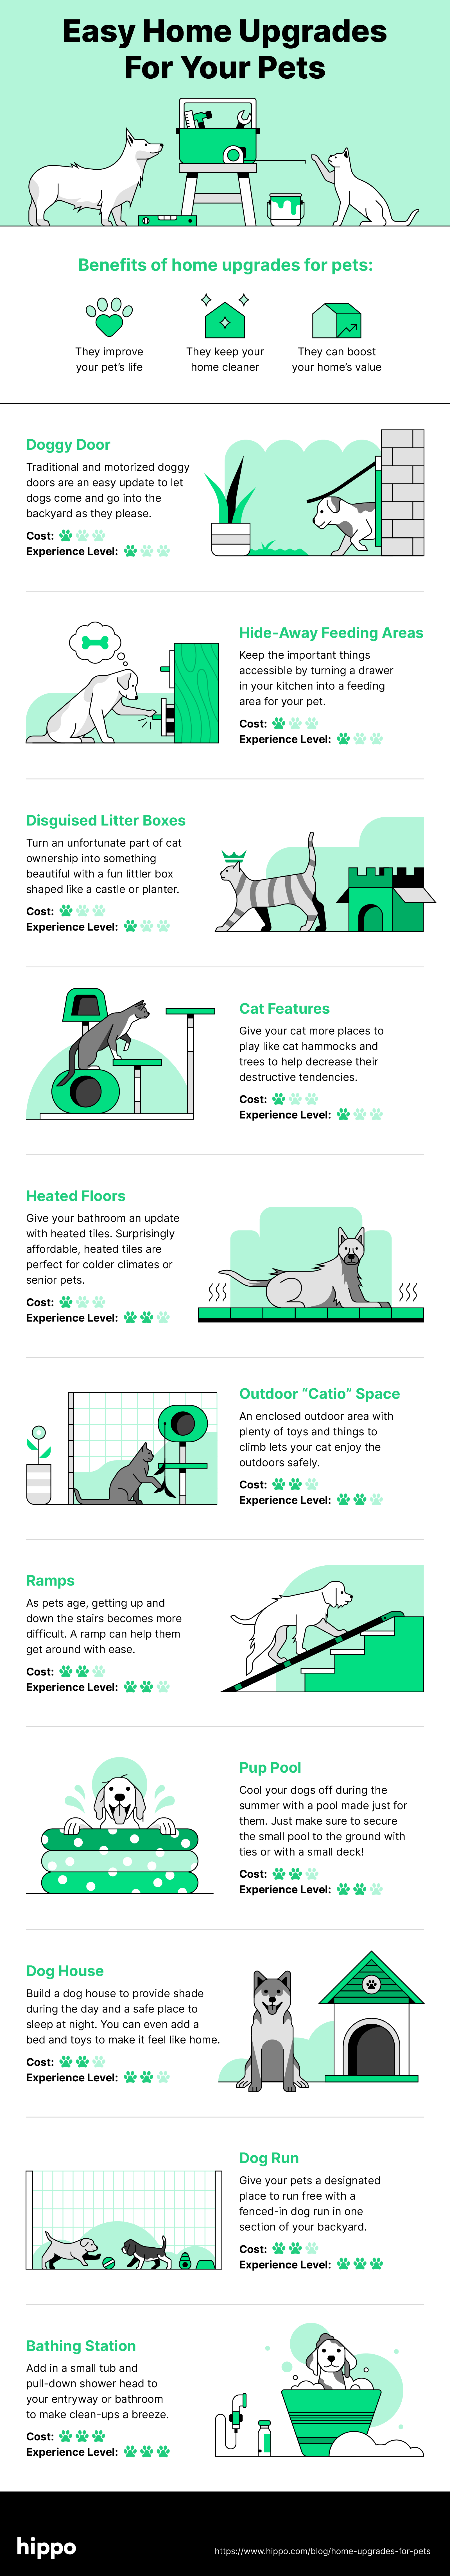 easy home upgrades for your pet infographic